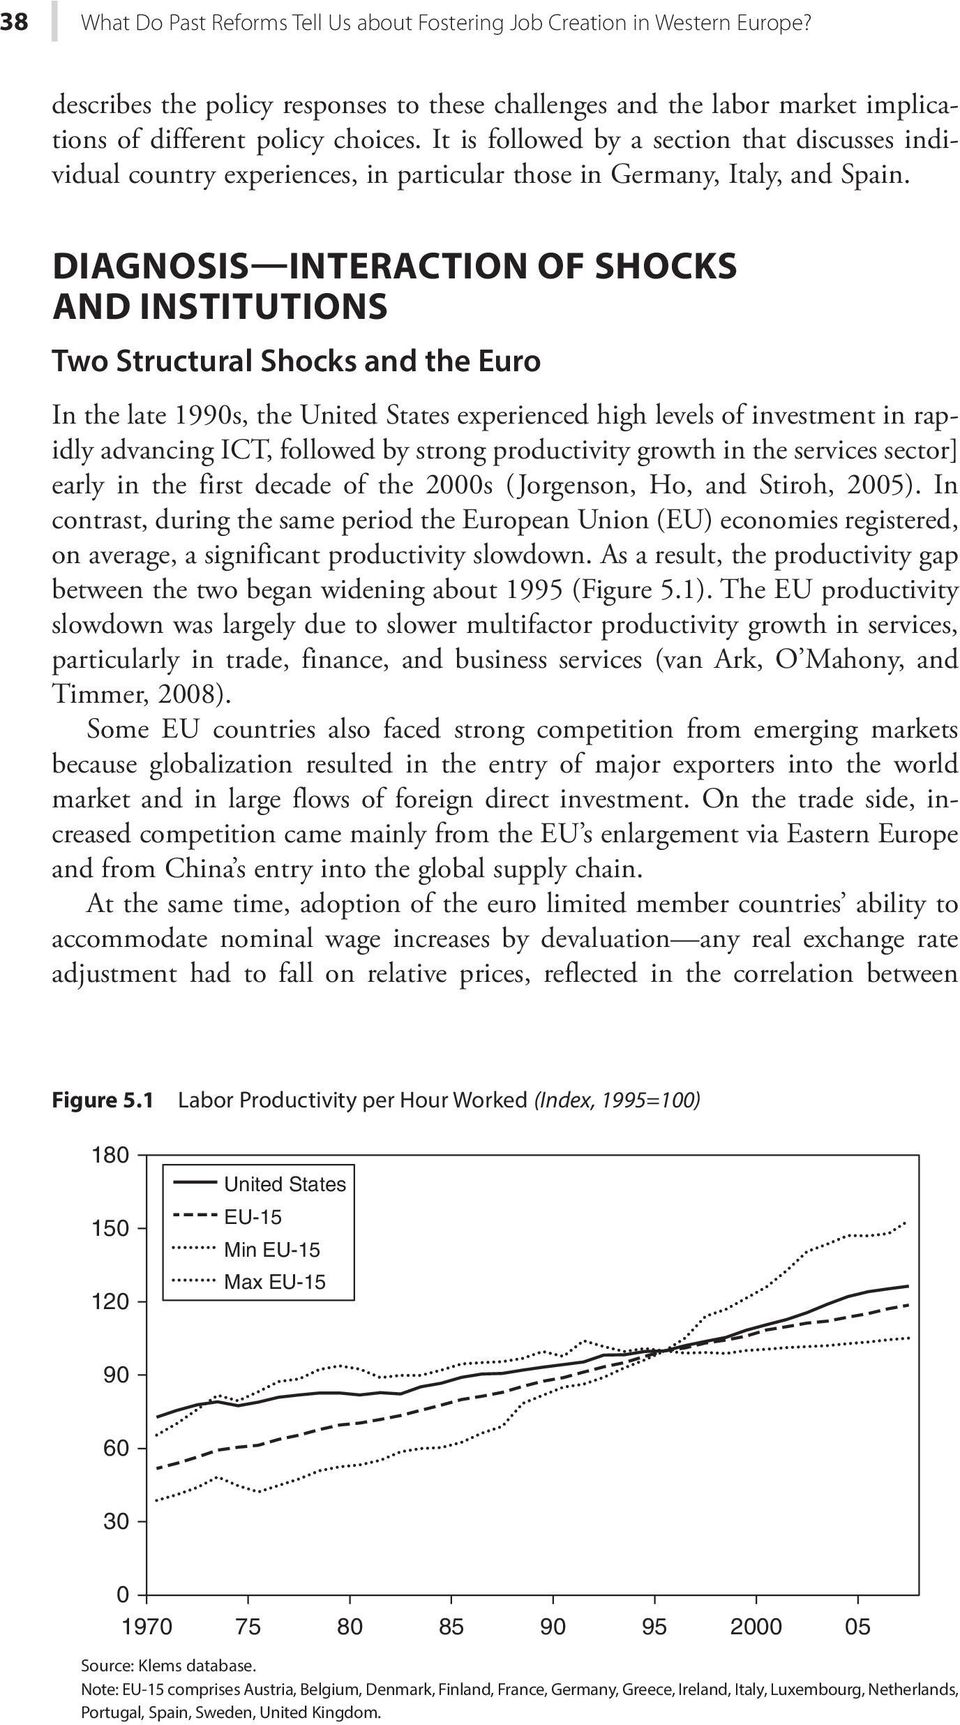 DIAGNOSIS INTERACTION OF SHOCKS AND INSTITUTIONS Two Structural Shocks and the Euro In the late 199s, the United States experienced high levels of investment in rapidly advancing ICT, followed by